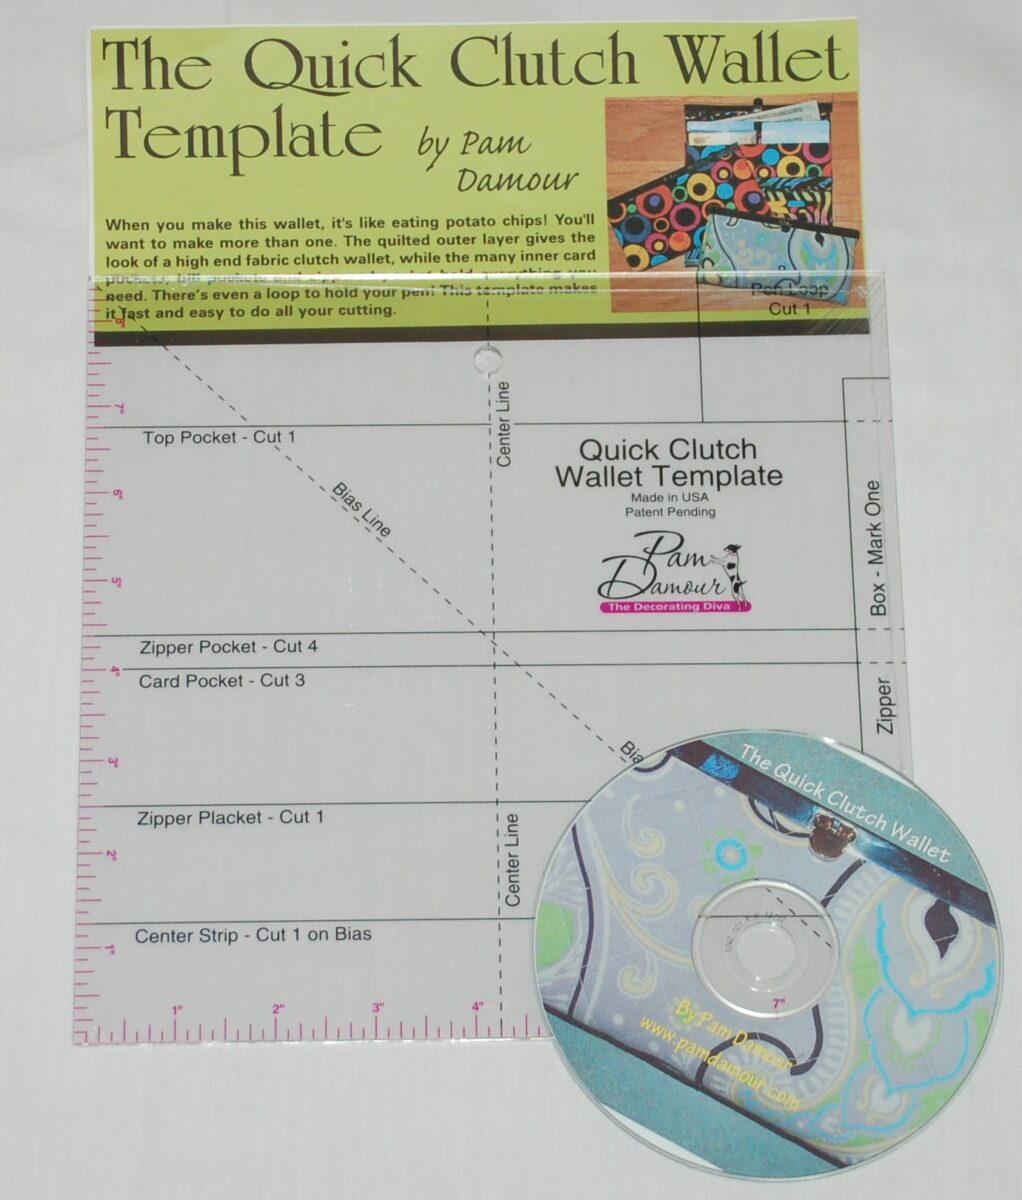 Quick and Small Clutch Wallet Template - Pam Damour | Pam Damour